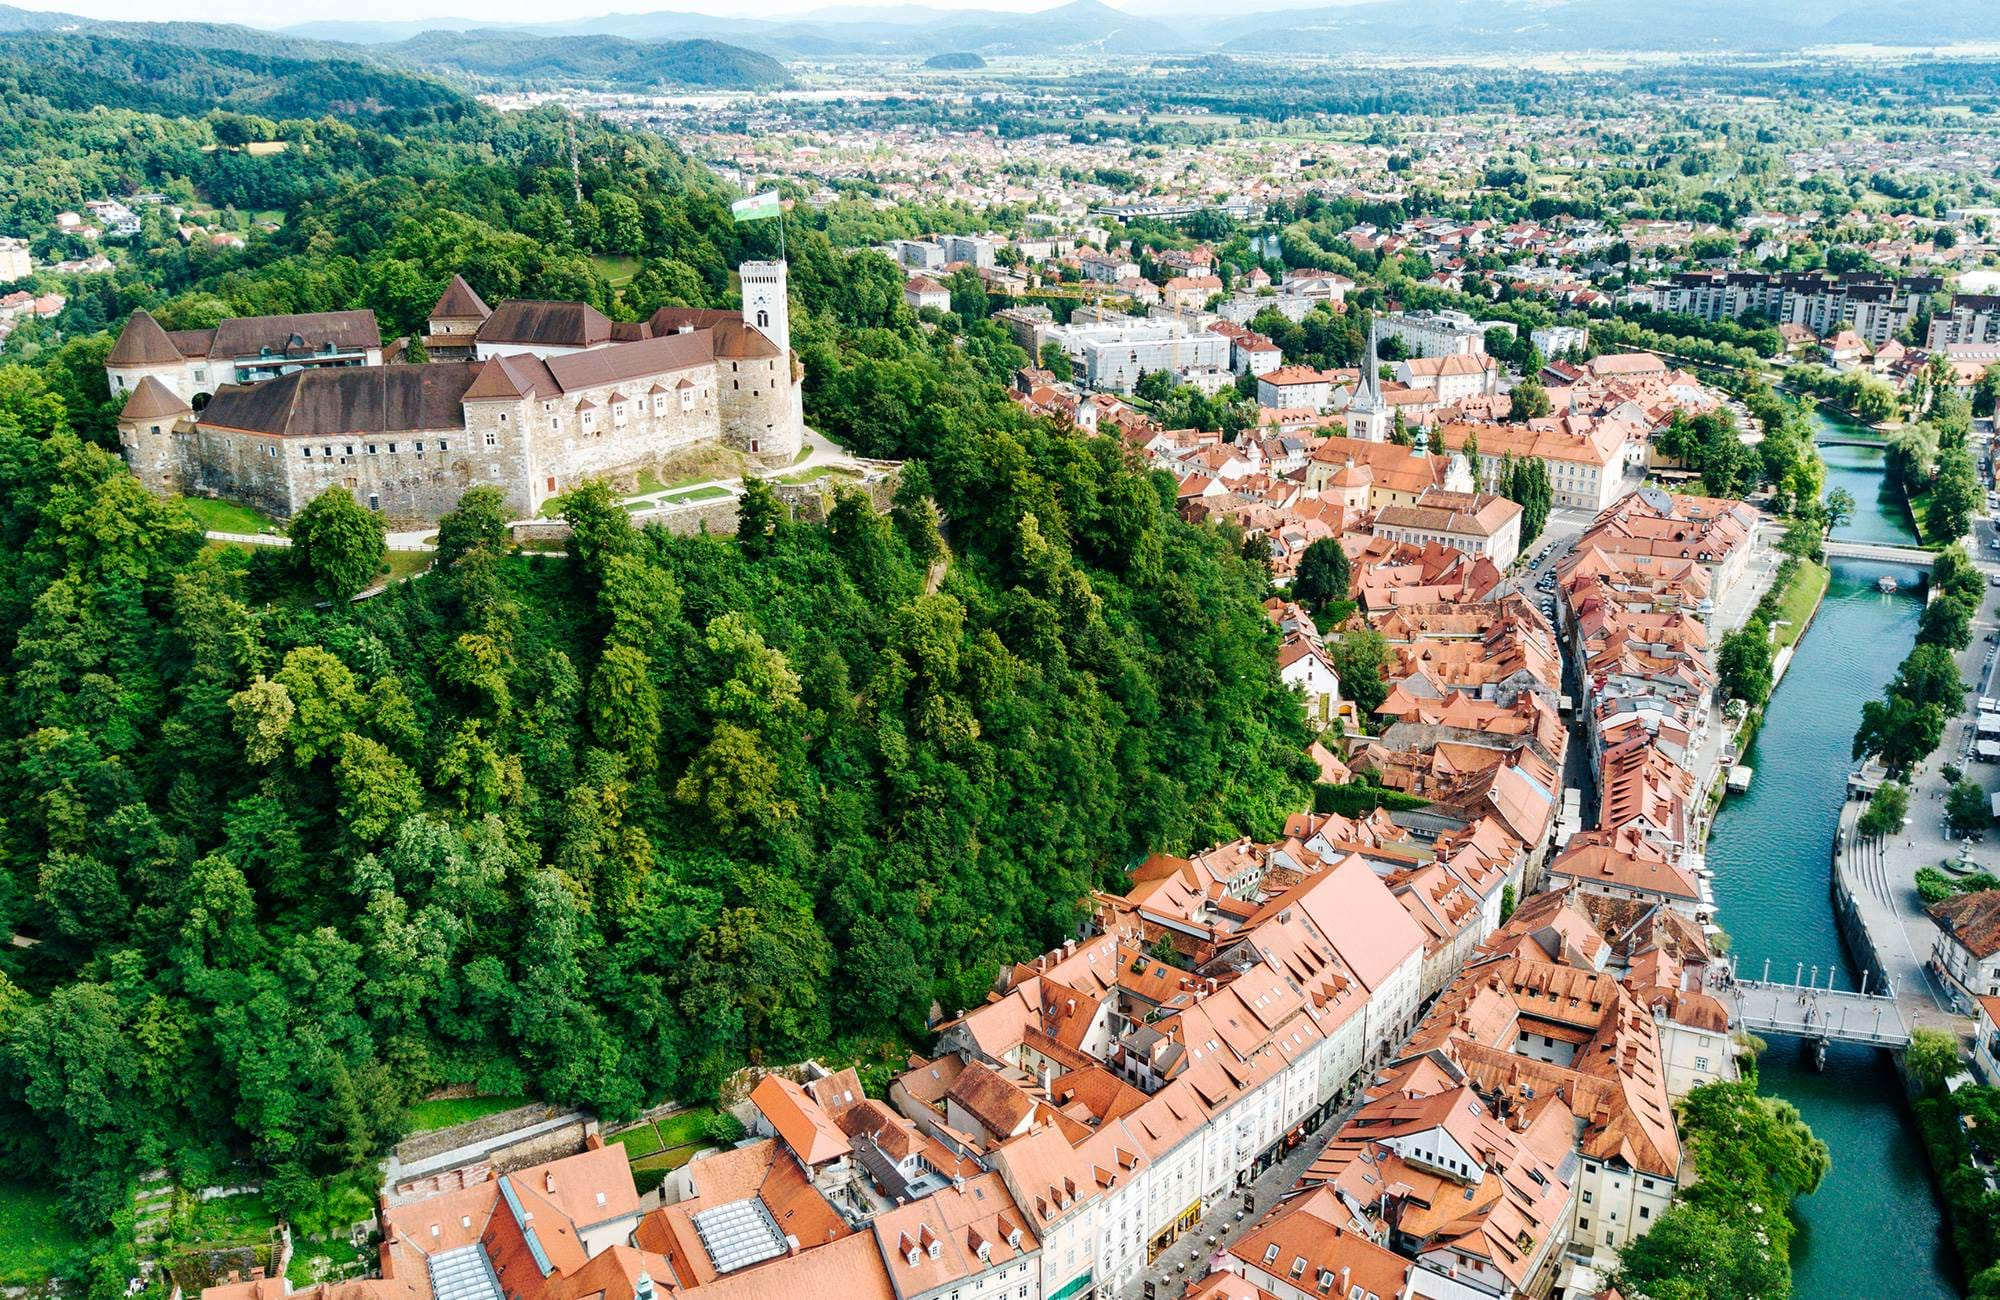 Enjoy the view of Ljubljana from above